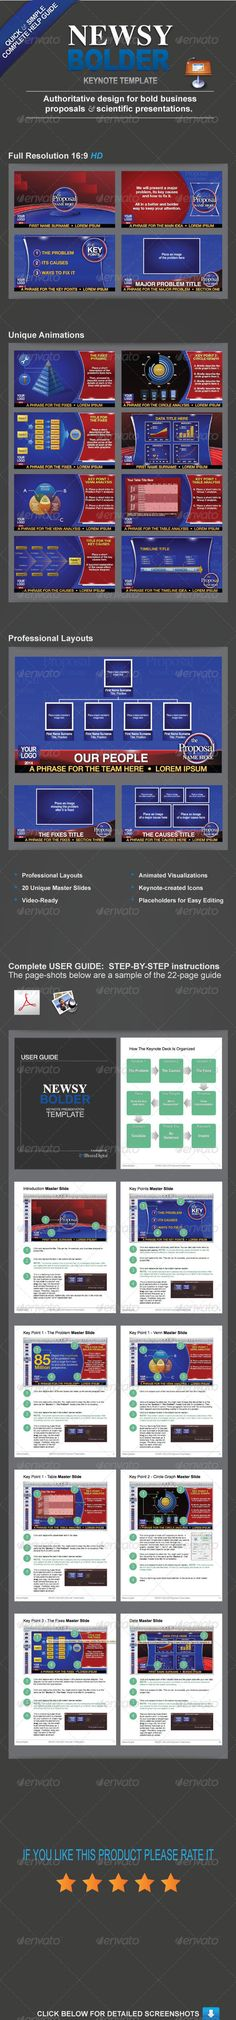 Newsy Bolder | Animated Keynote Template  #GraphicRiver         Overview  NEWSY BOLDER Keynote Presentation with custom Keynote-native graphic elements and animated visualizations. All you need is Keynote. All graphic elements are created in Keynote so it's the only application required. Ideal for business, science and personal use. Create your own presentation in 20-30 minutes using the 20 easy-to-use Master Slides and complete user guide.    Features   All Keynote-created Graphics  No…